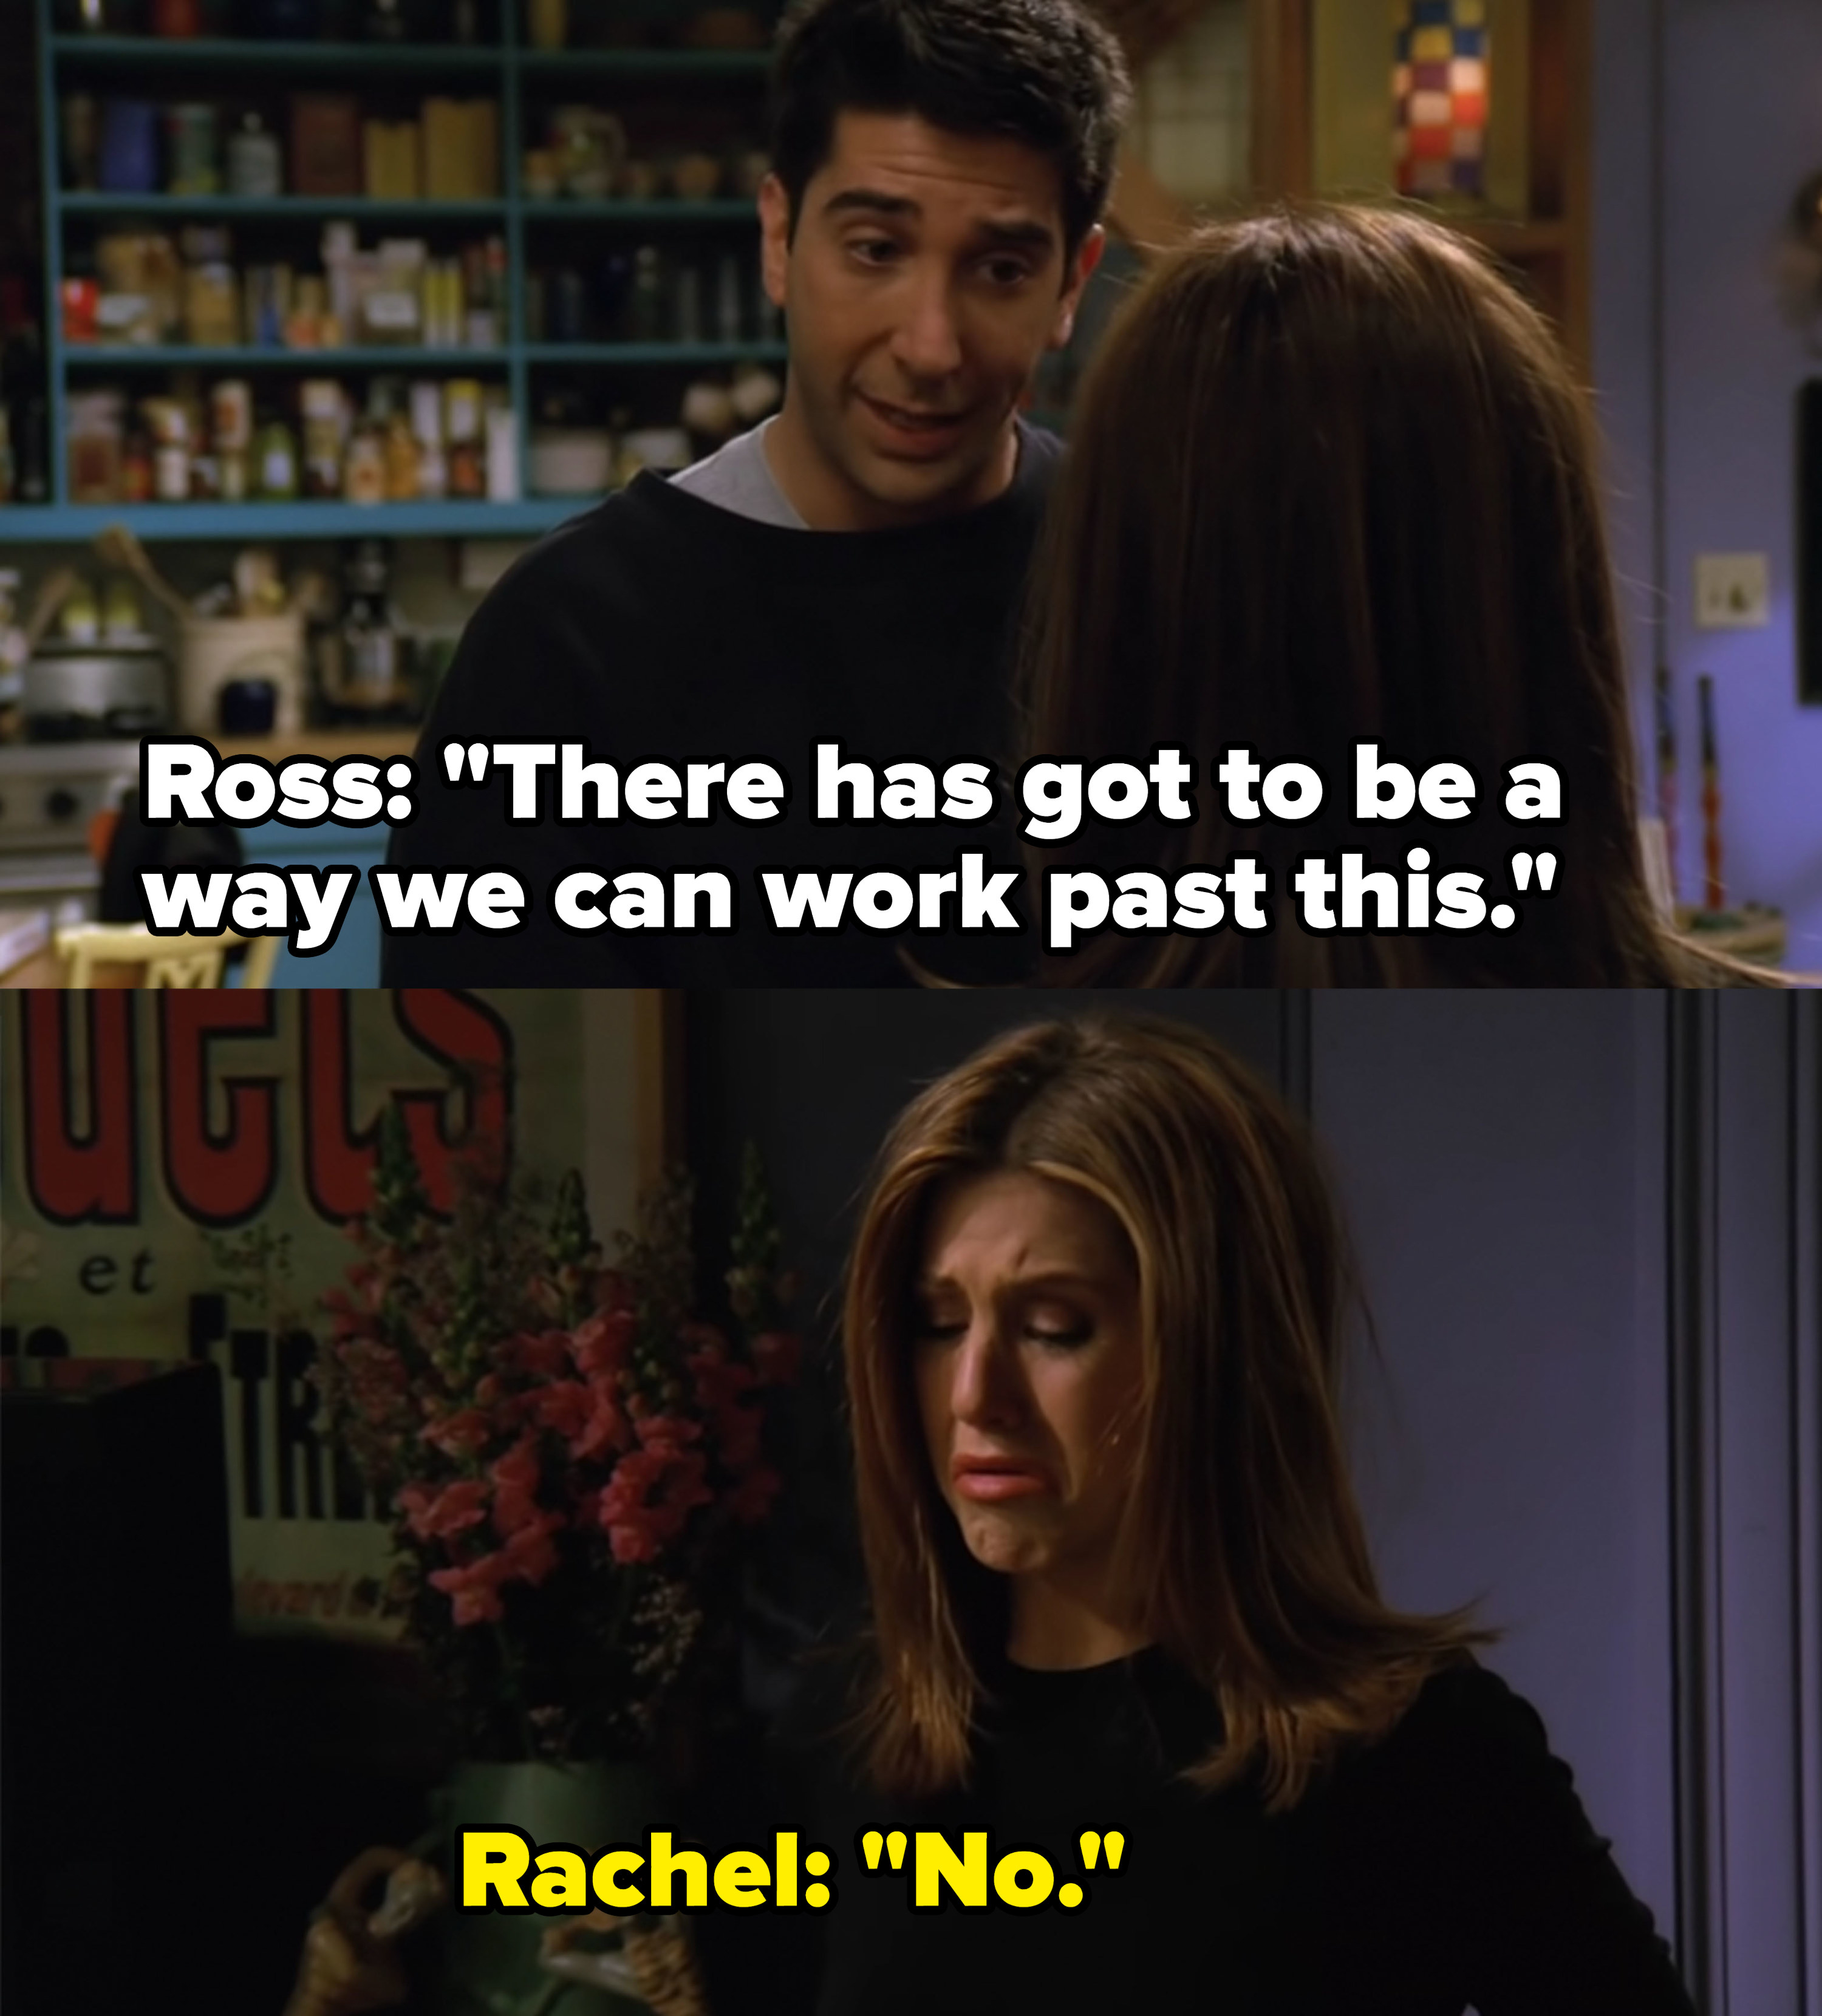 Rachel finds out Ross slept with someone else